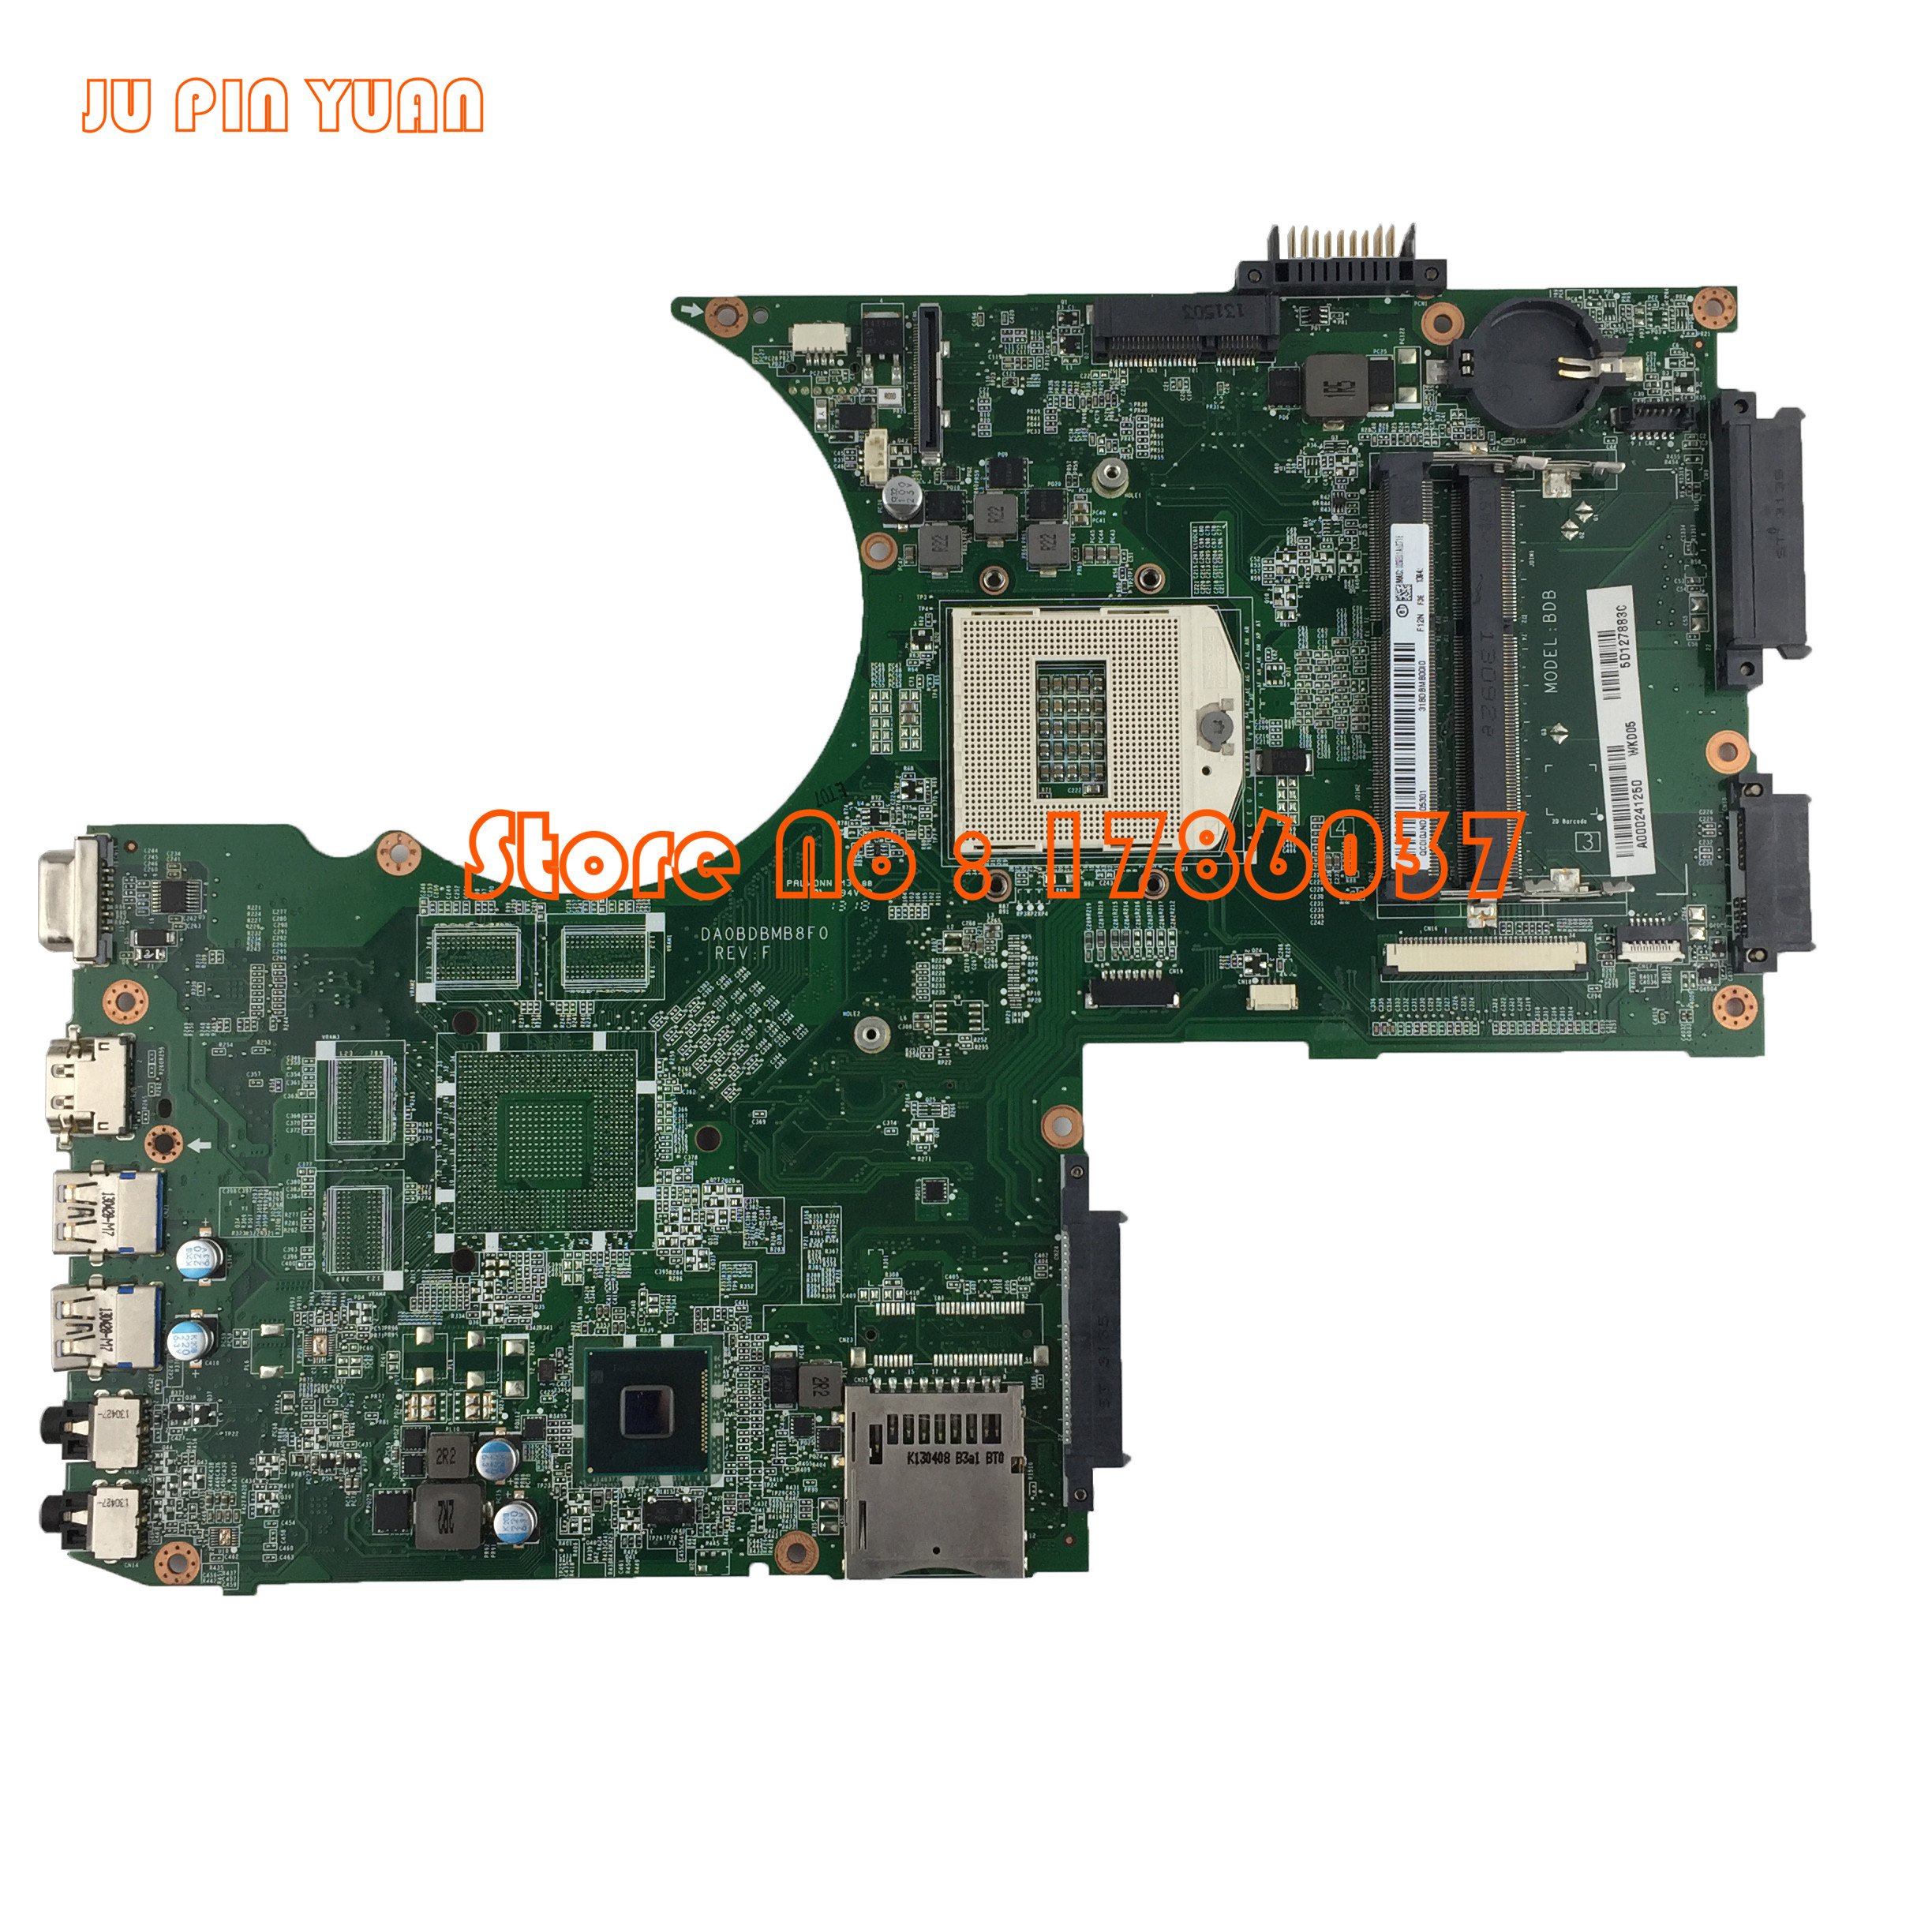 JU PIN YUAN A000241250 for Toshiba Satellite P70 P75 P70-A P75-A motherboard PGA 947 All functions fully TestedJU PIN YUAN A000241250 for Toshiba Satellite P70 P75 P70-A P75-A motherboard PGA 947 All functions fully Tested